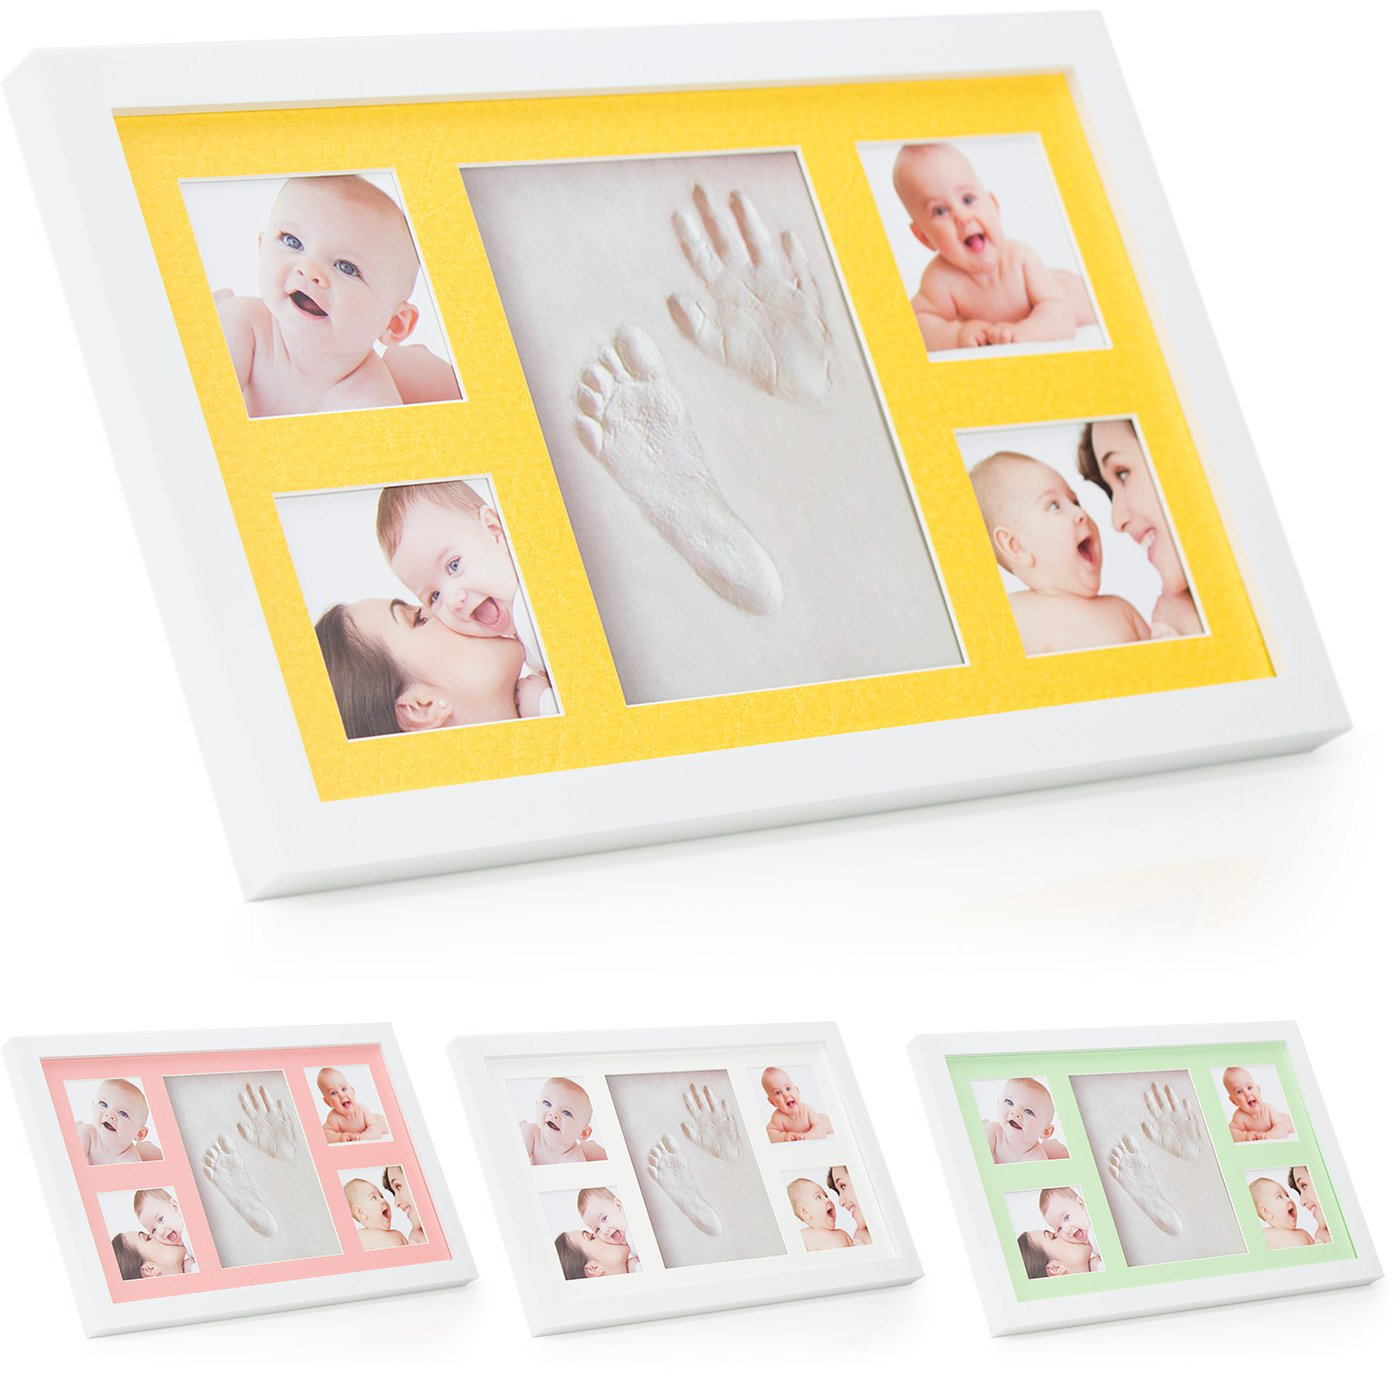 Baby Hand and Footprint Photo Frame Kit ® Babyboon | 4 COLOURS IN ONE PACK | Non-Toxic Air Dry Clay | The Perfect Keepsake for a Baby Shower or Christening Gift | Fantastic Impressions of Hands and Foot - TRY NOW ! Hand Print Frame Clay Kit 4